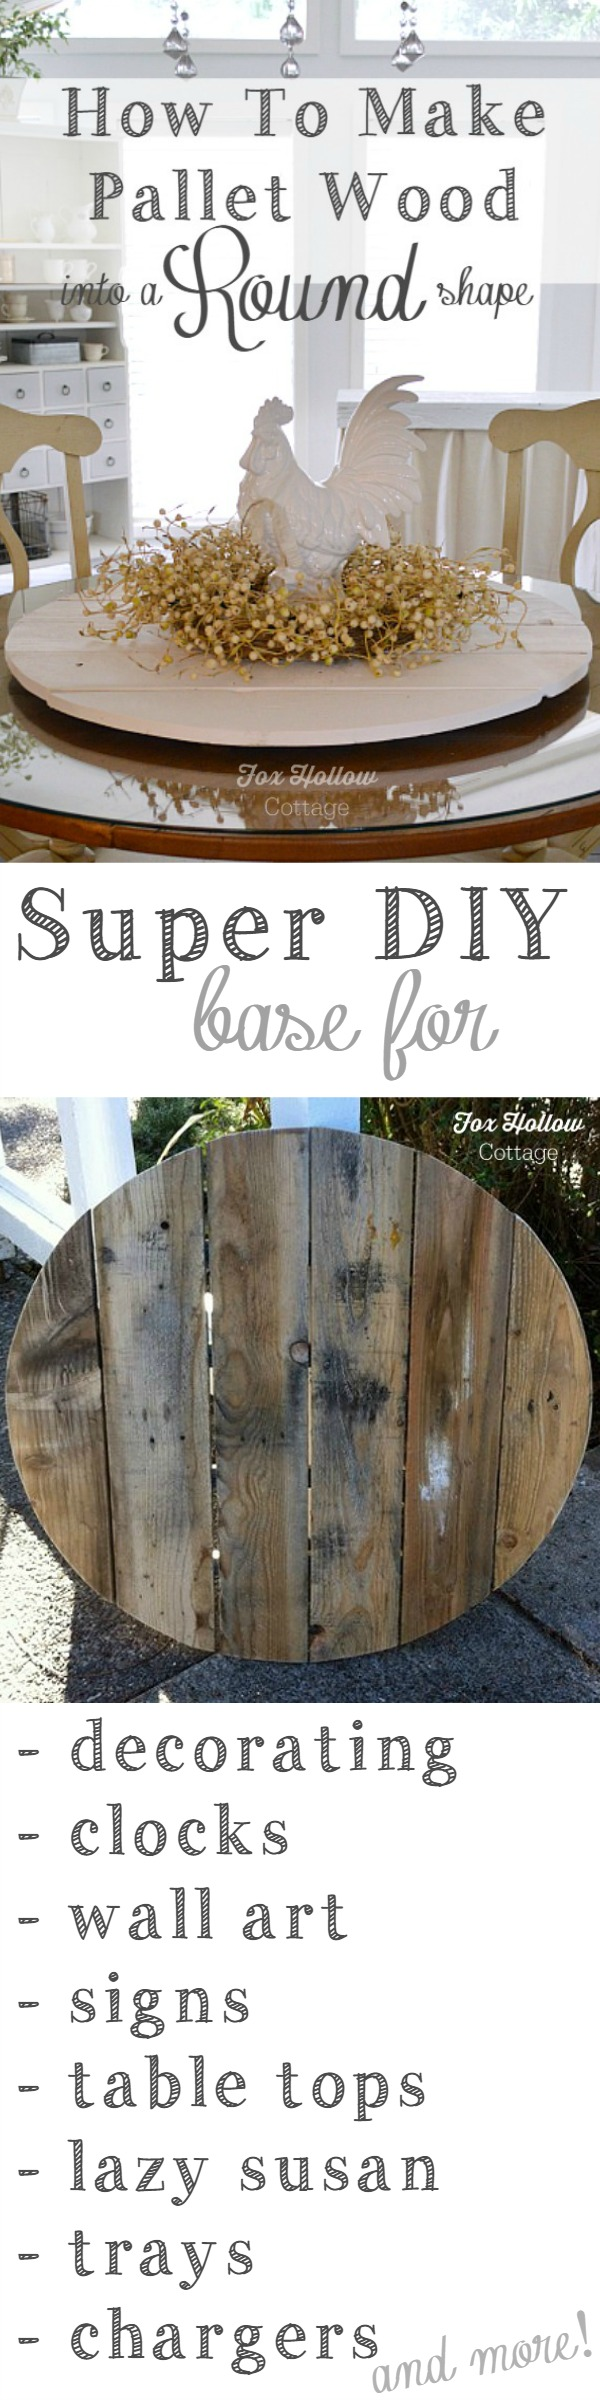 How-to Make Pallet Wood into a Round Circle Shape. Simple beginner friendly DIY tutorial at foxhollowcottage